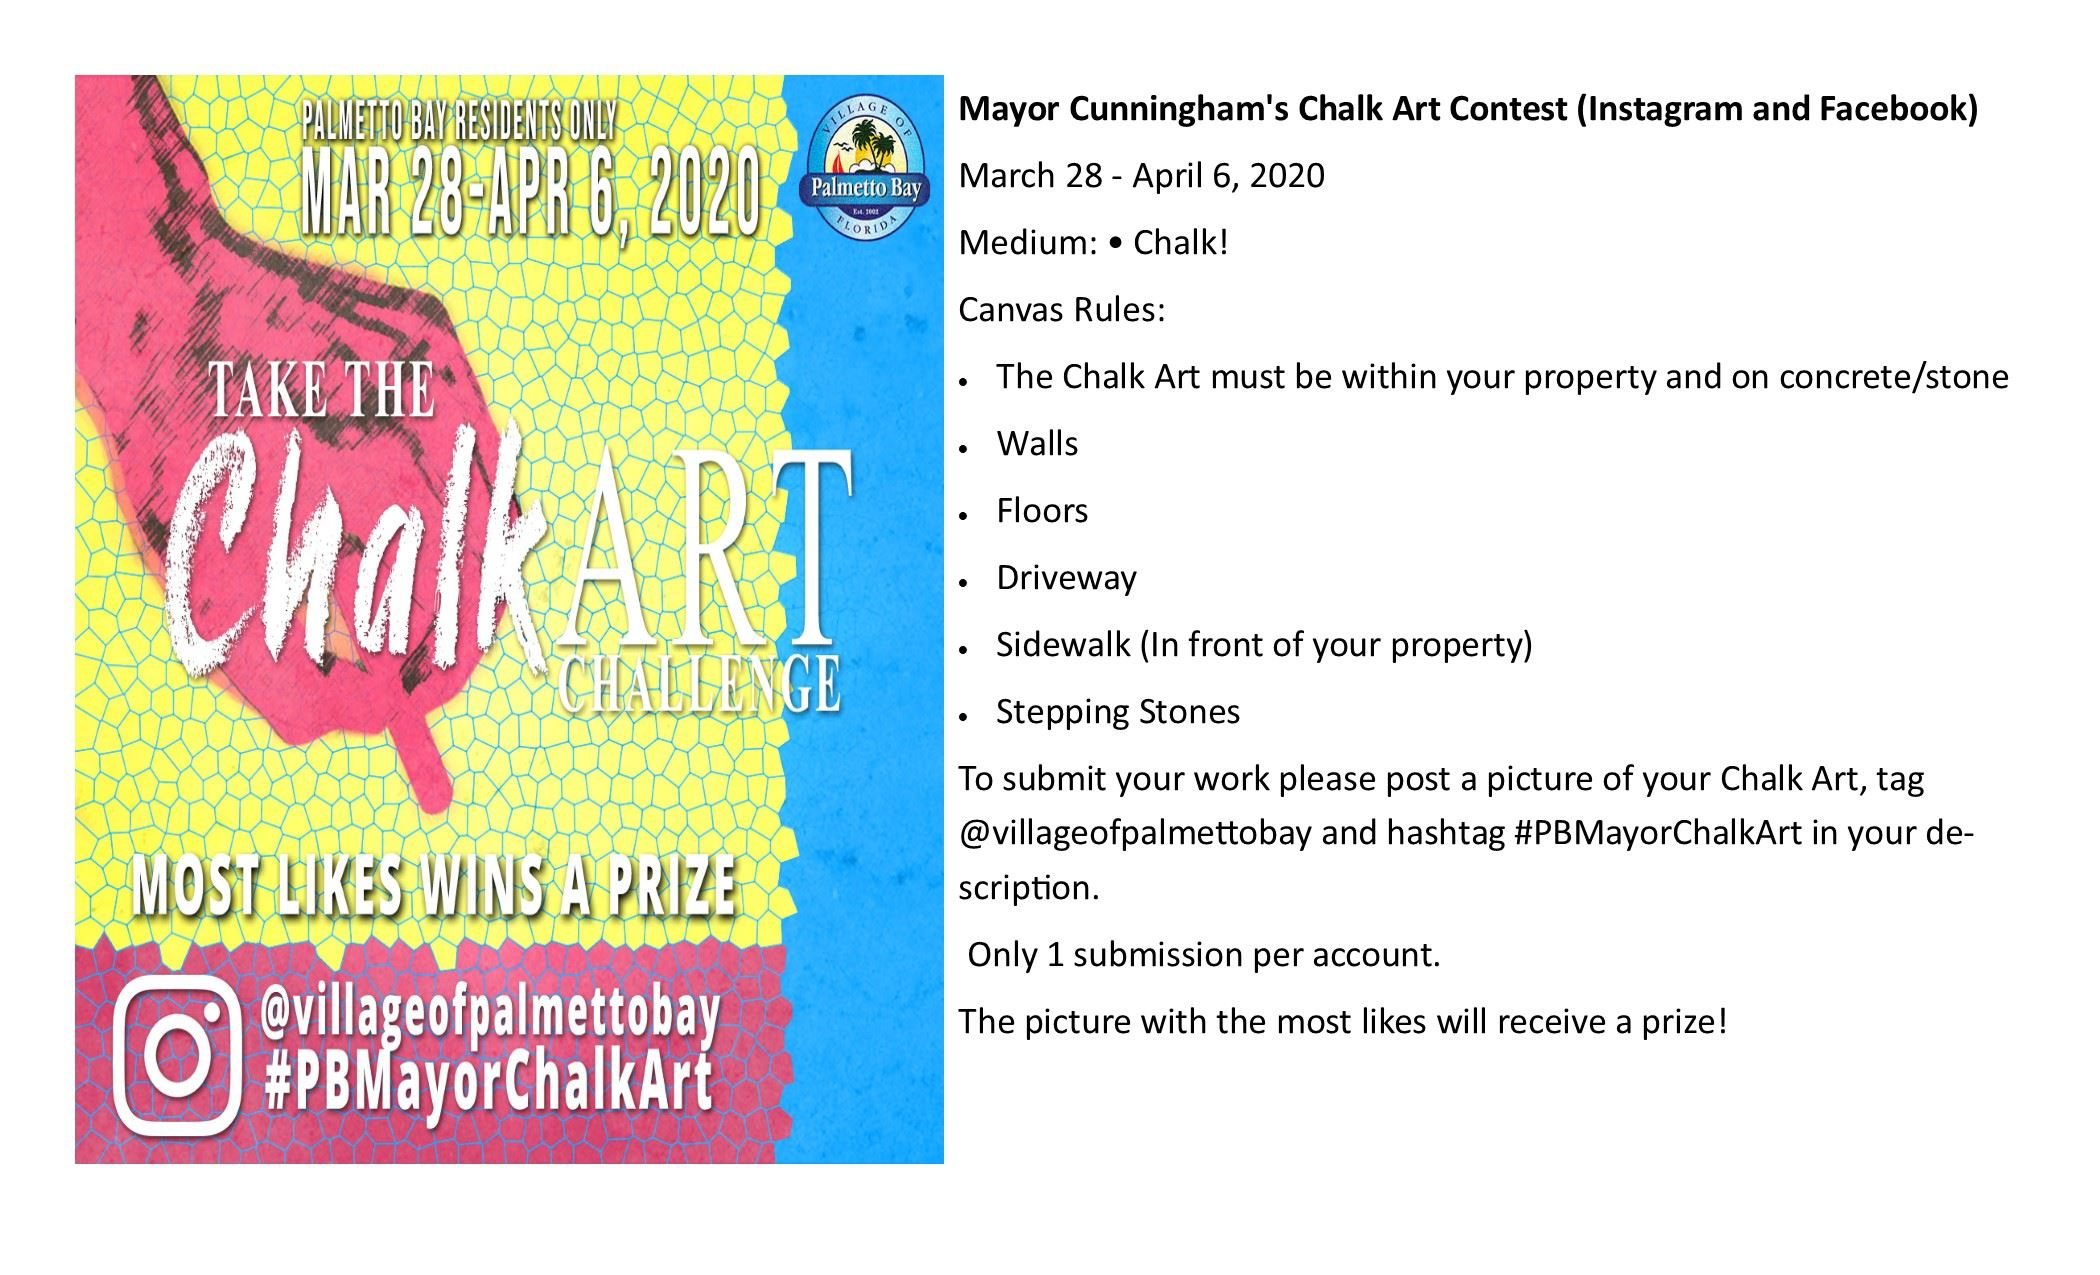 Mayor Cunningham's Chalk Art Contest, March 28-April 6. Post one picture per account.